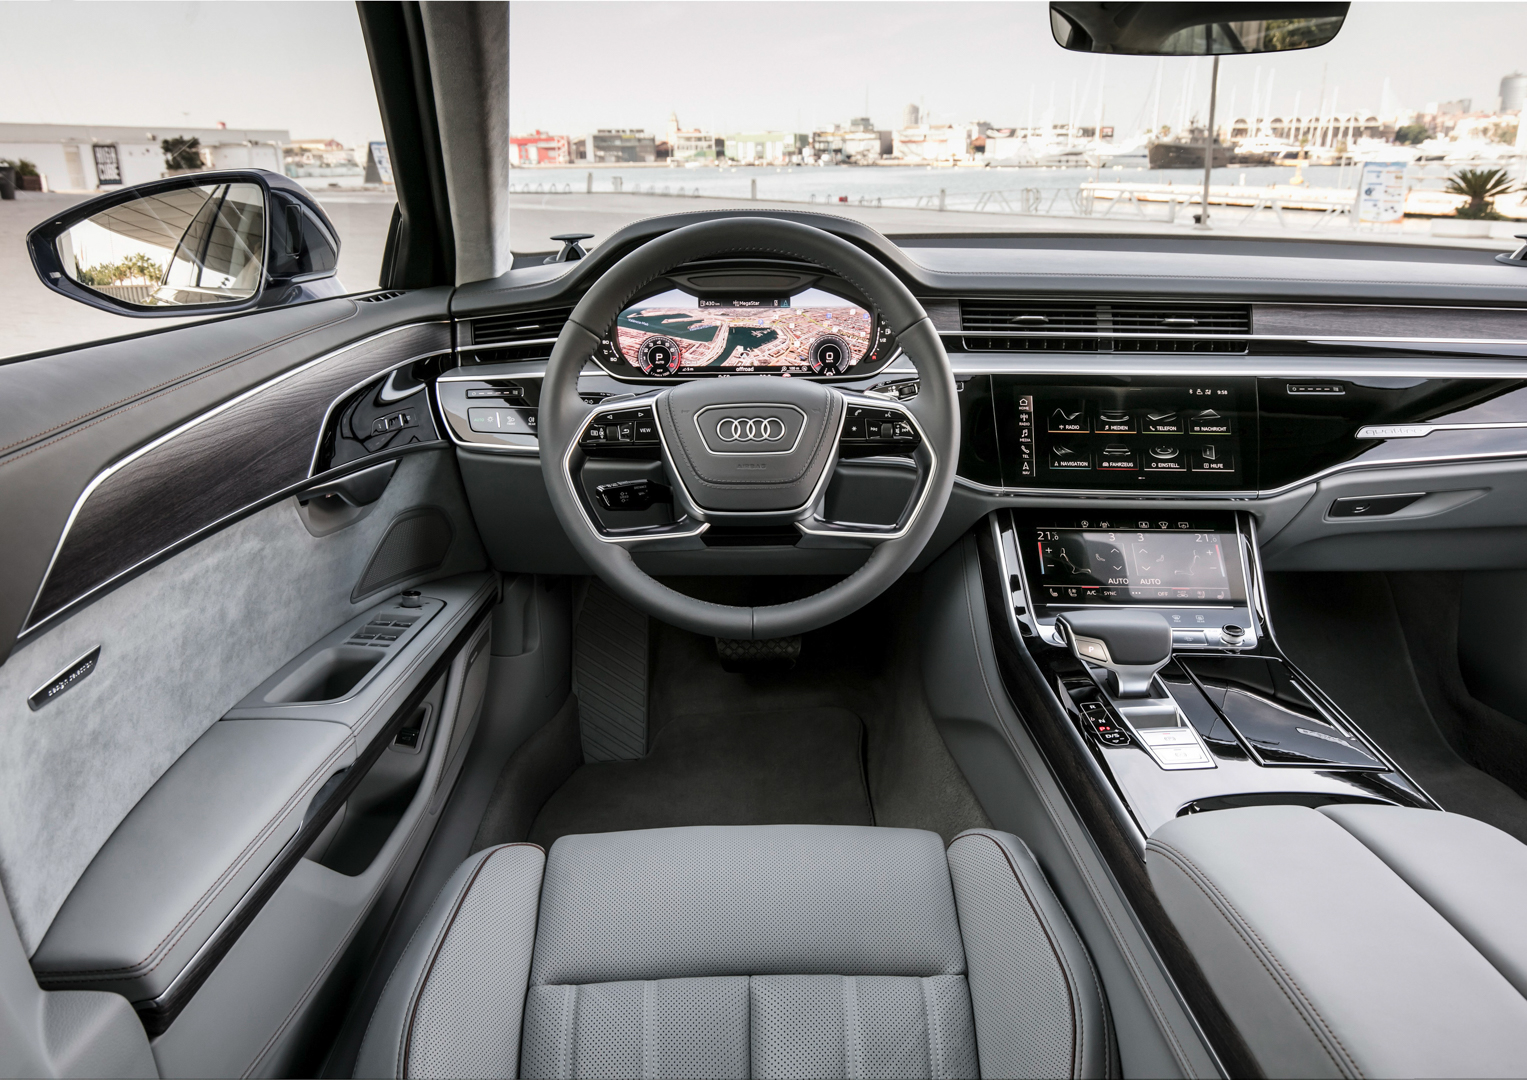 VIDEO: We check out the Touch Response MMI on the Audi A8